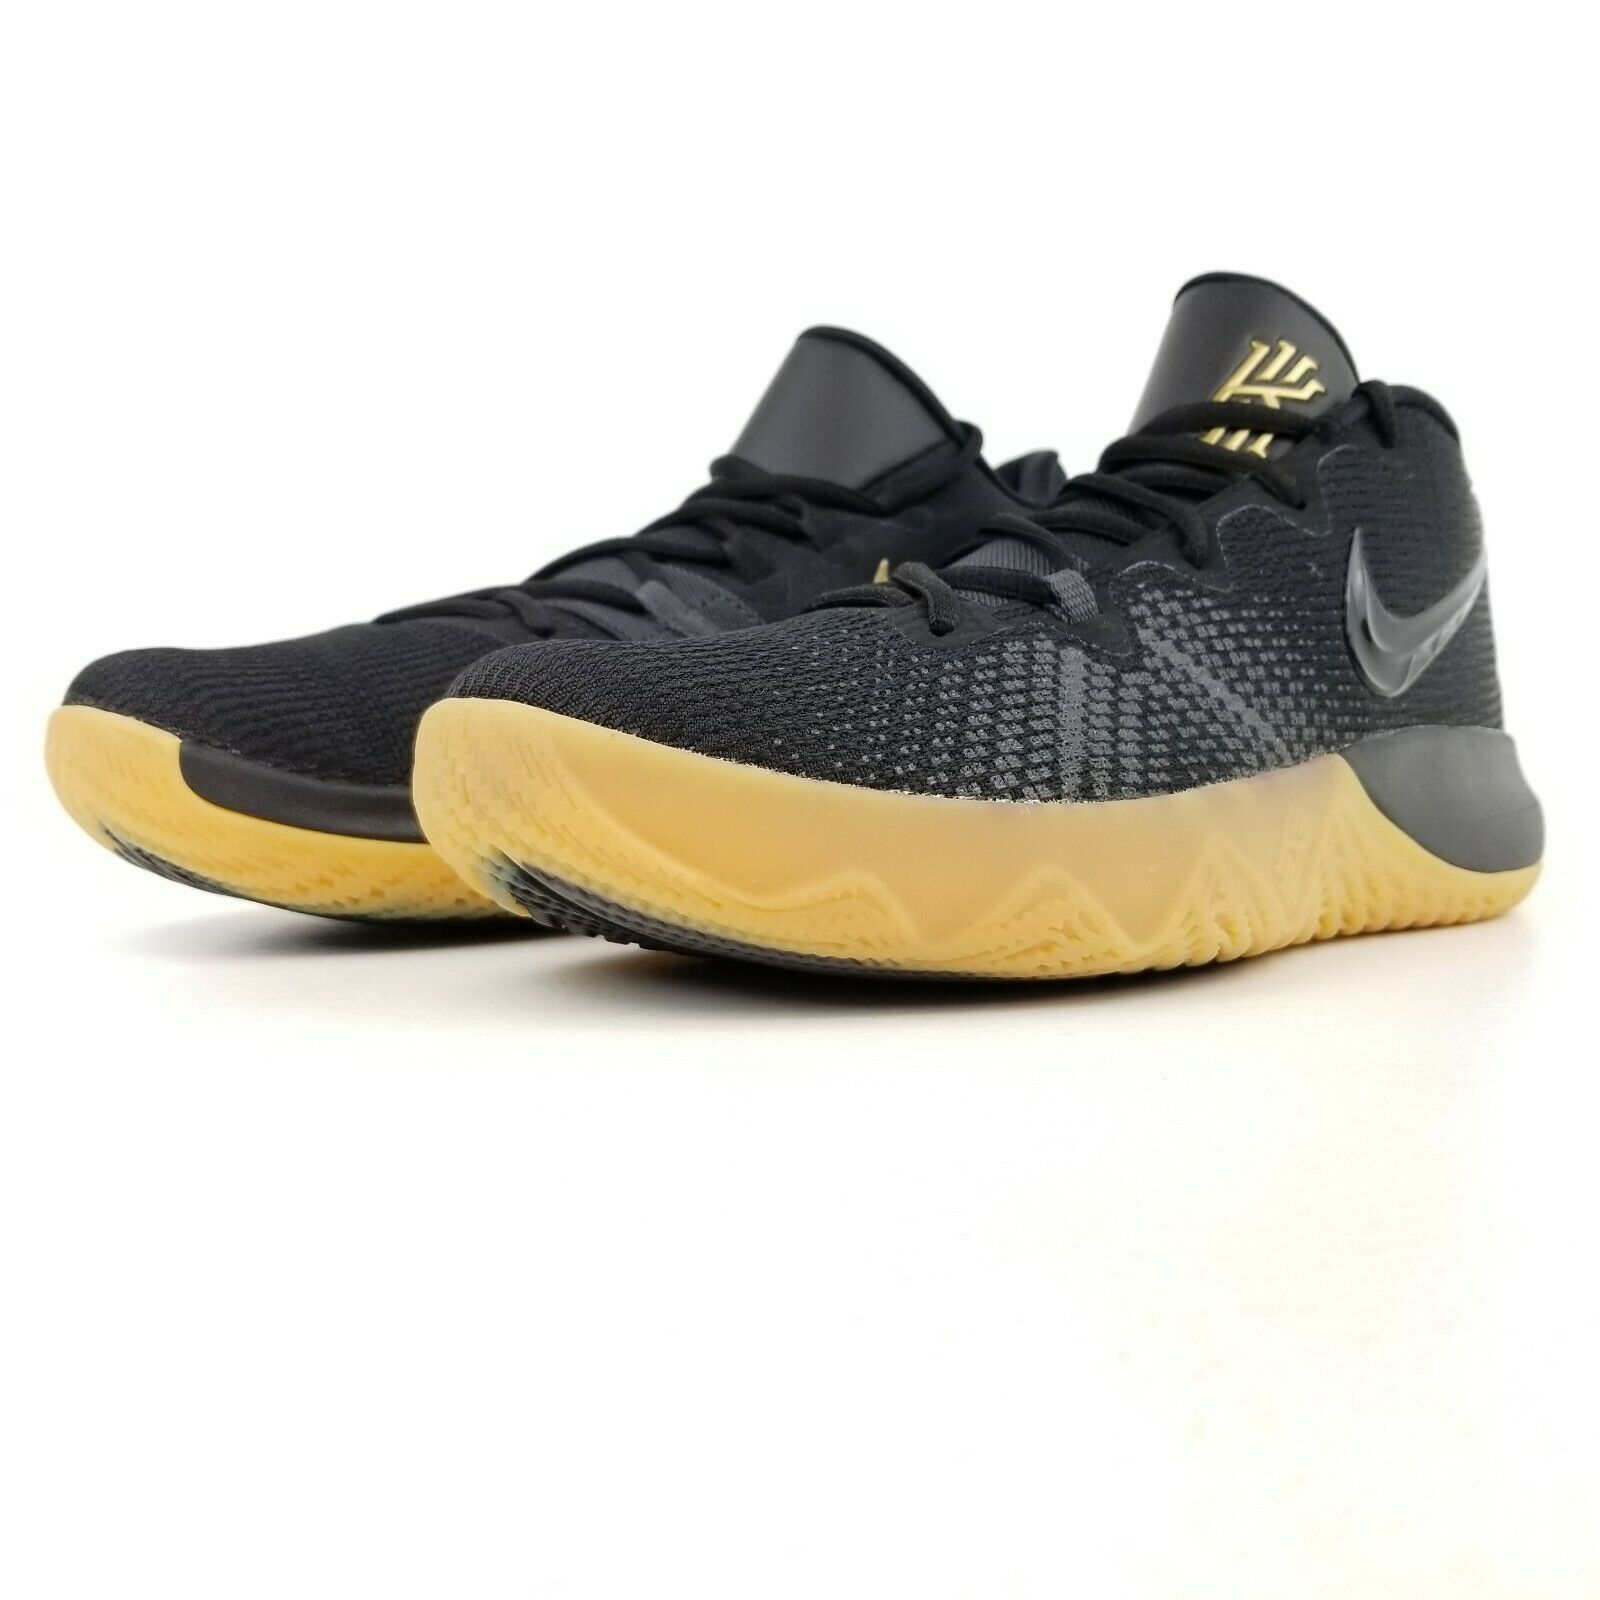 sneakers for cheap a67f9 7128f Nike Kyrie Irving Flytrap Mens Basketball Shoes Black Gold AA7071 009 Sizes  9-12